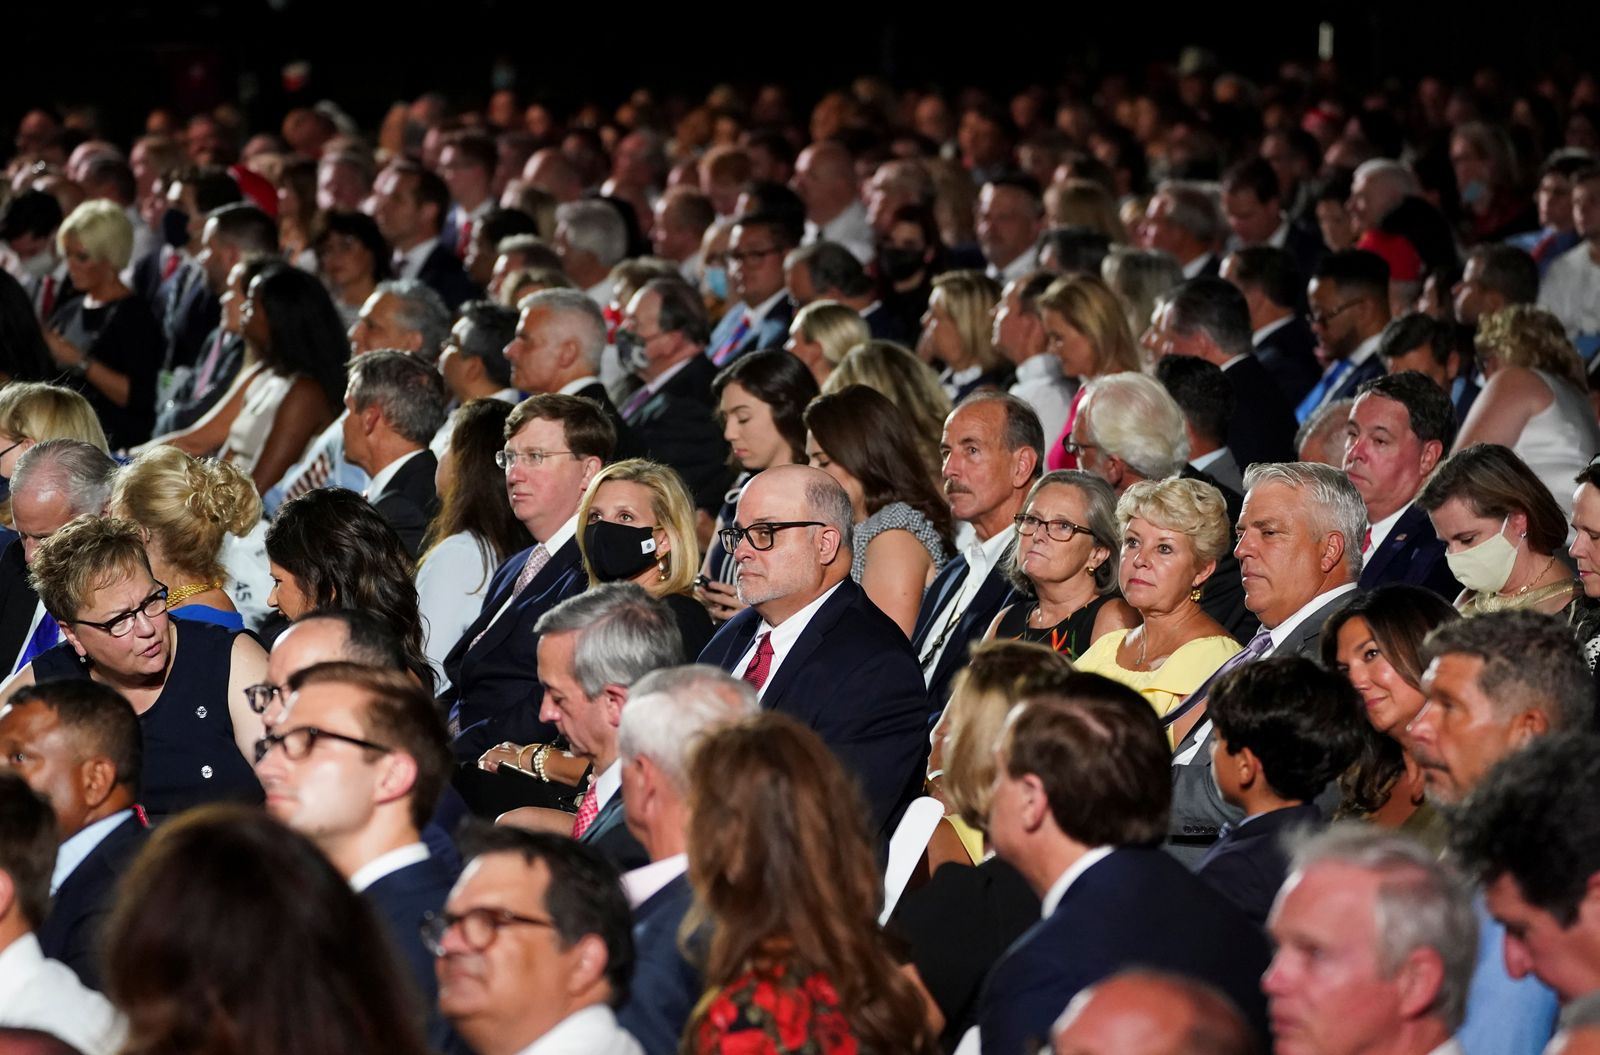 Supporters of U.S. President Donald Trump pack the South Lawn of the White House for his acceptance speech as the 2020 Republican presidential nominee in Washington